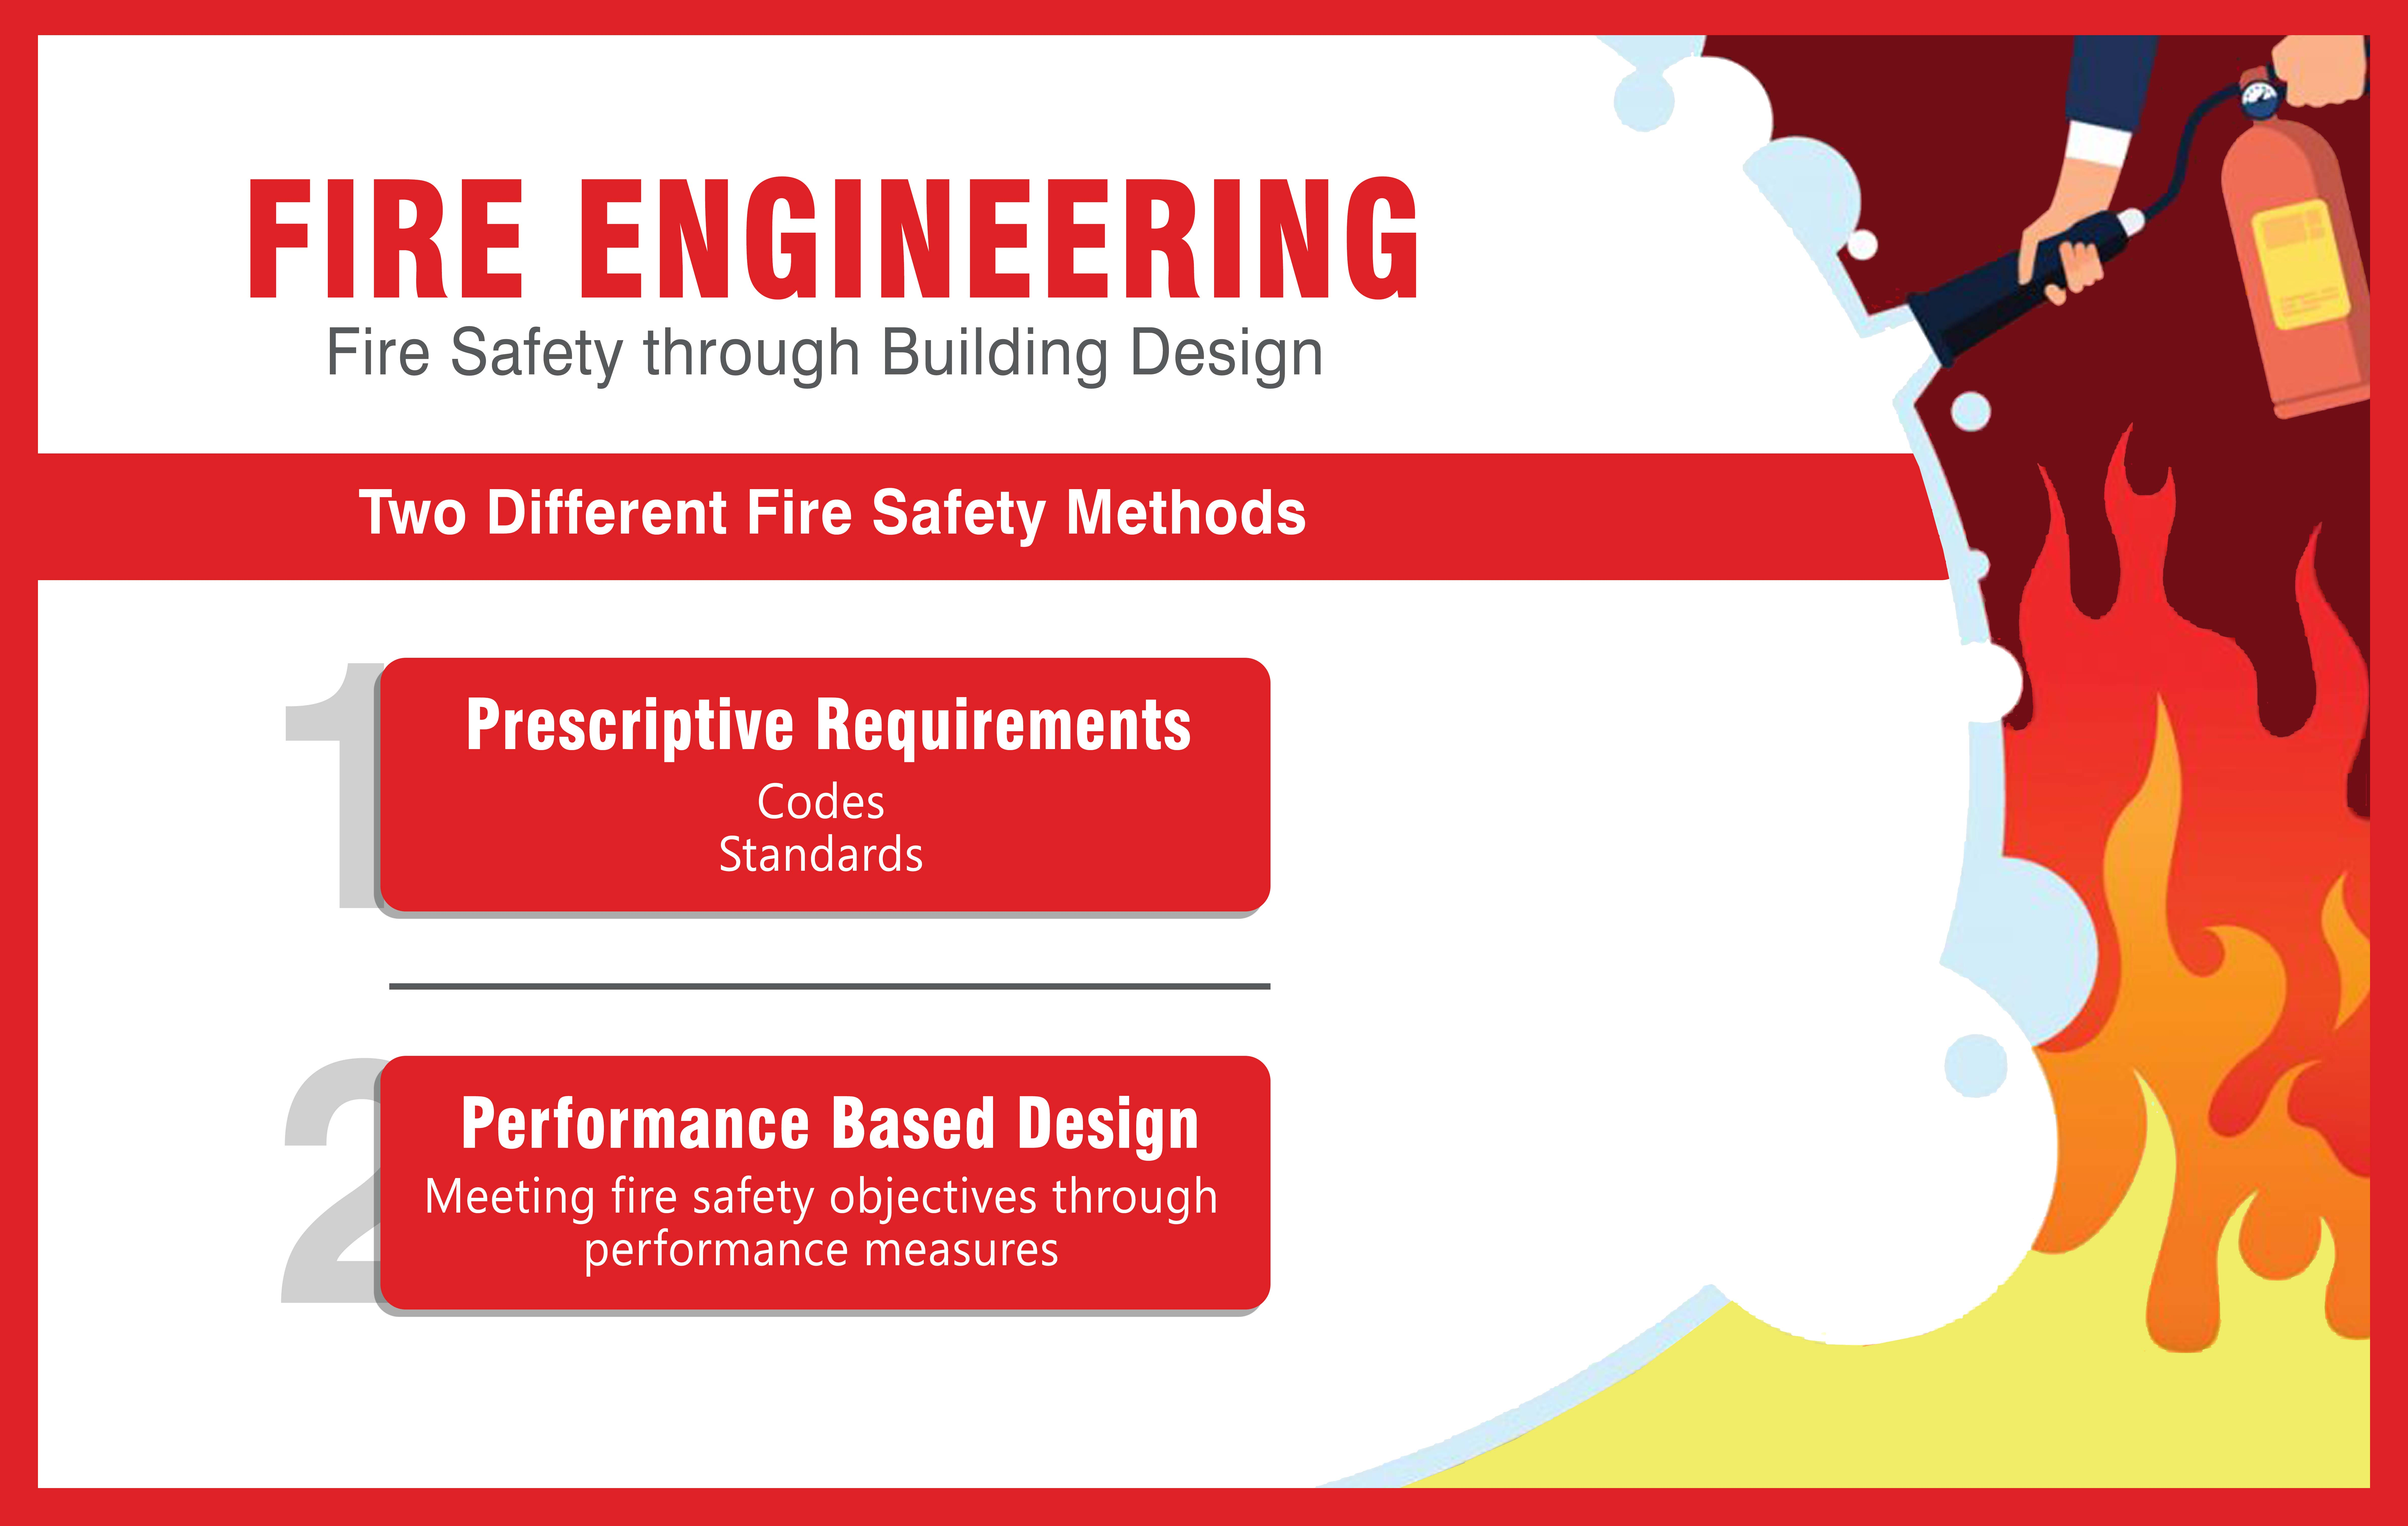 Fire-Engineering-Prescriptive-Vs-Performance-Based-Design